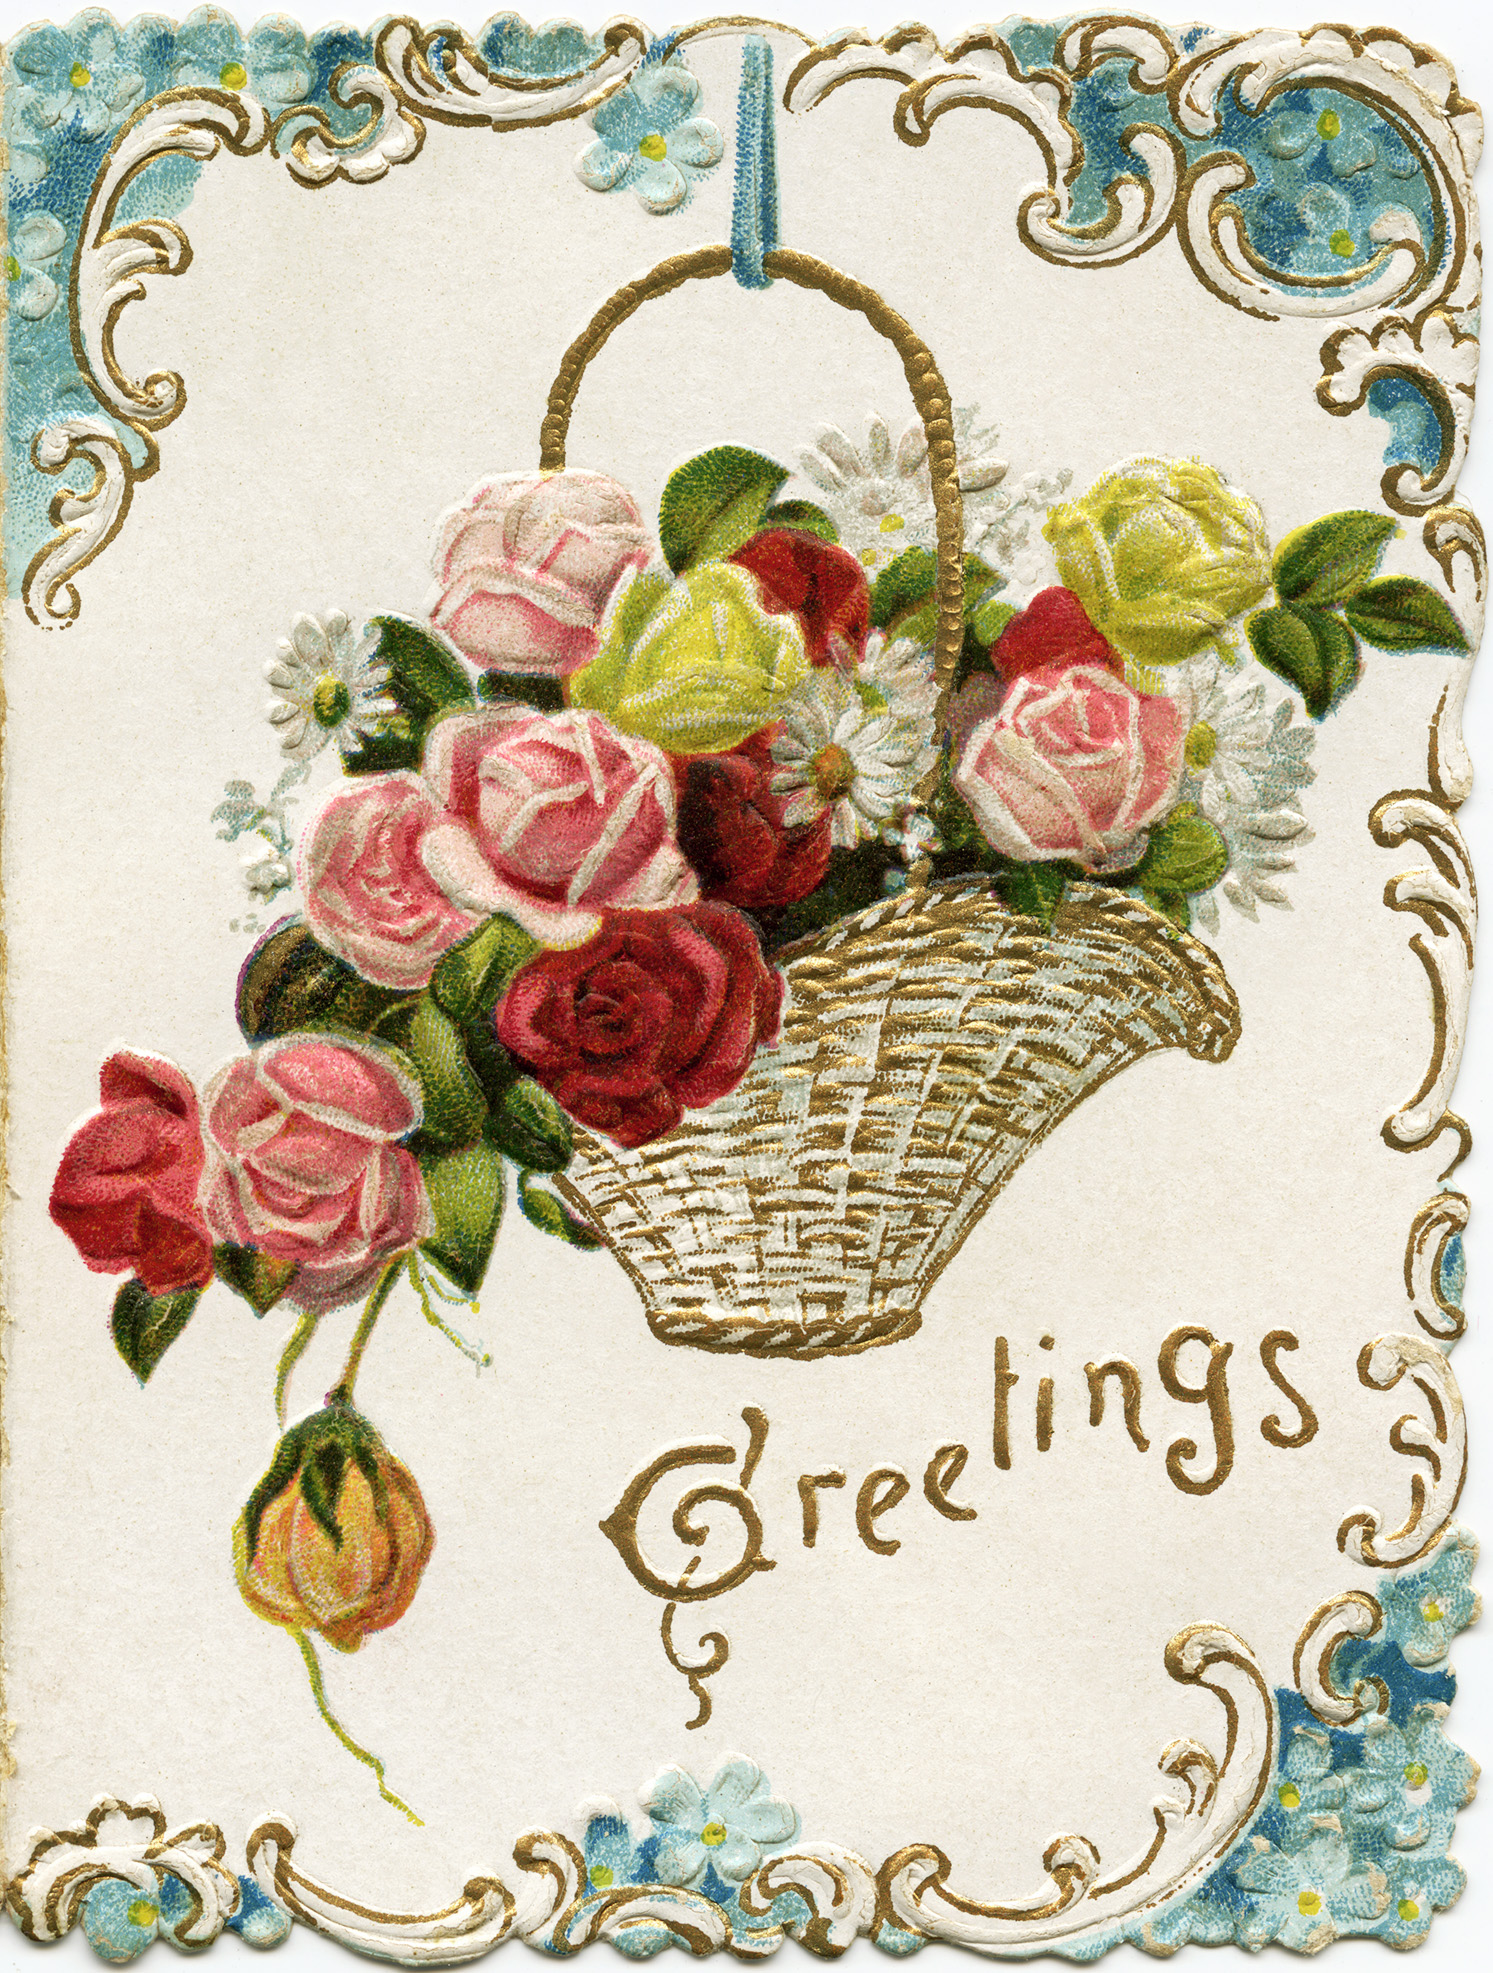 year vintage floral card old fashioned holiday card antique new years graphic basket of